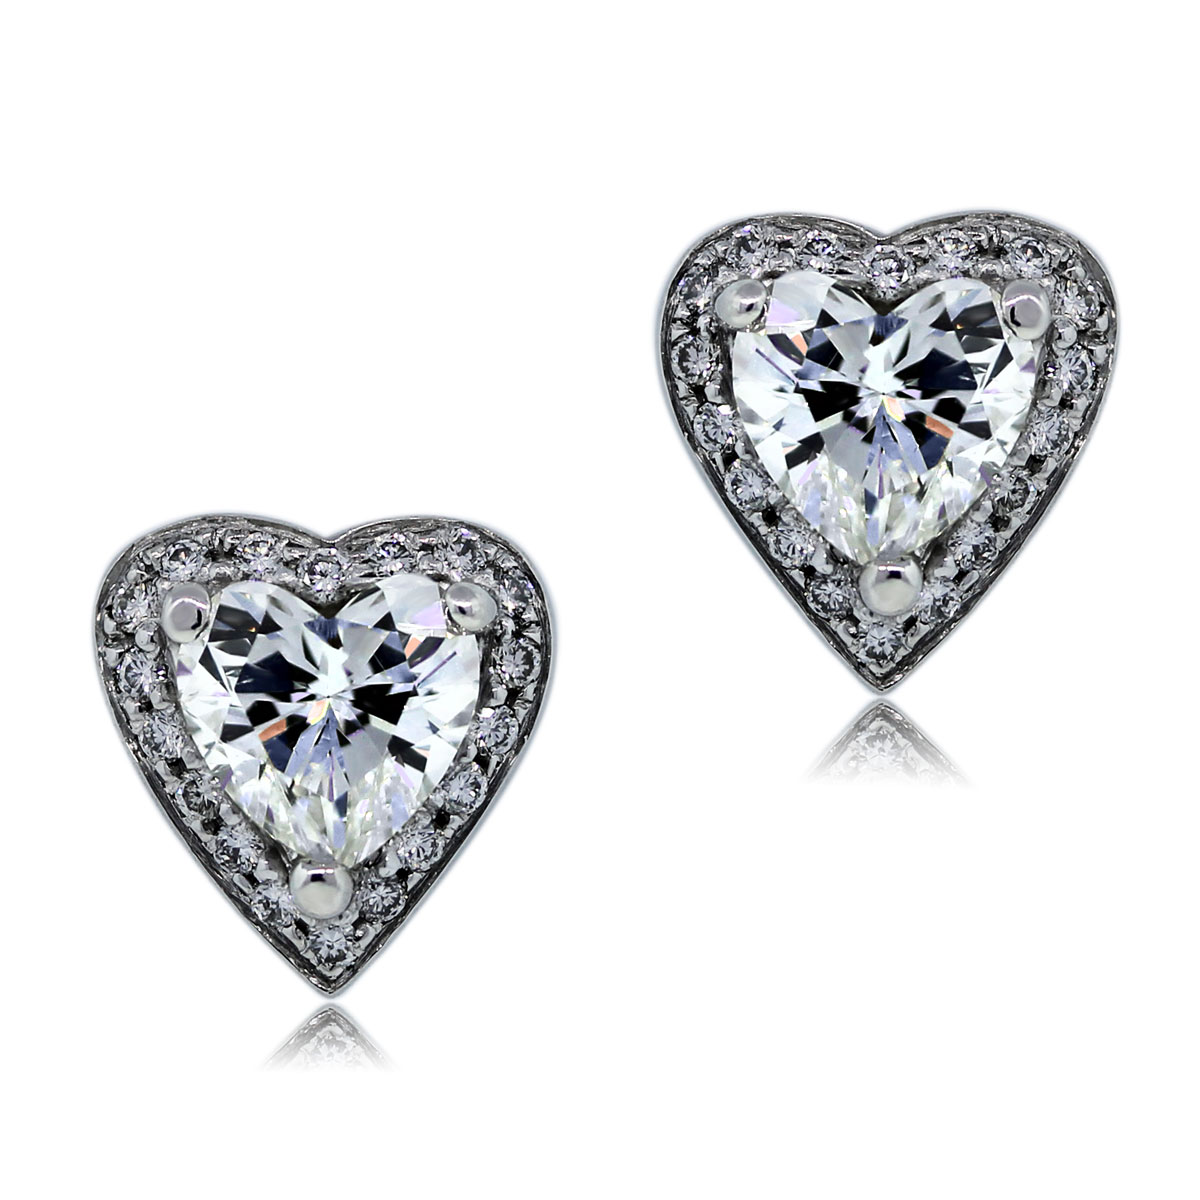 You are Viewing these Heart Shaped Diamond Stud Earrings!